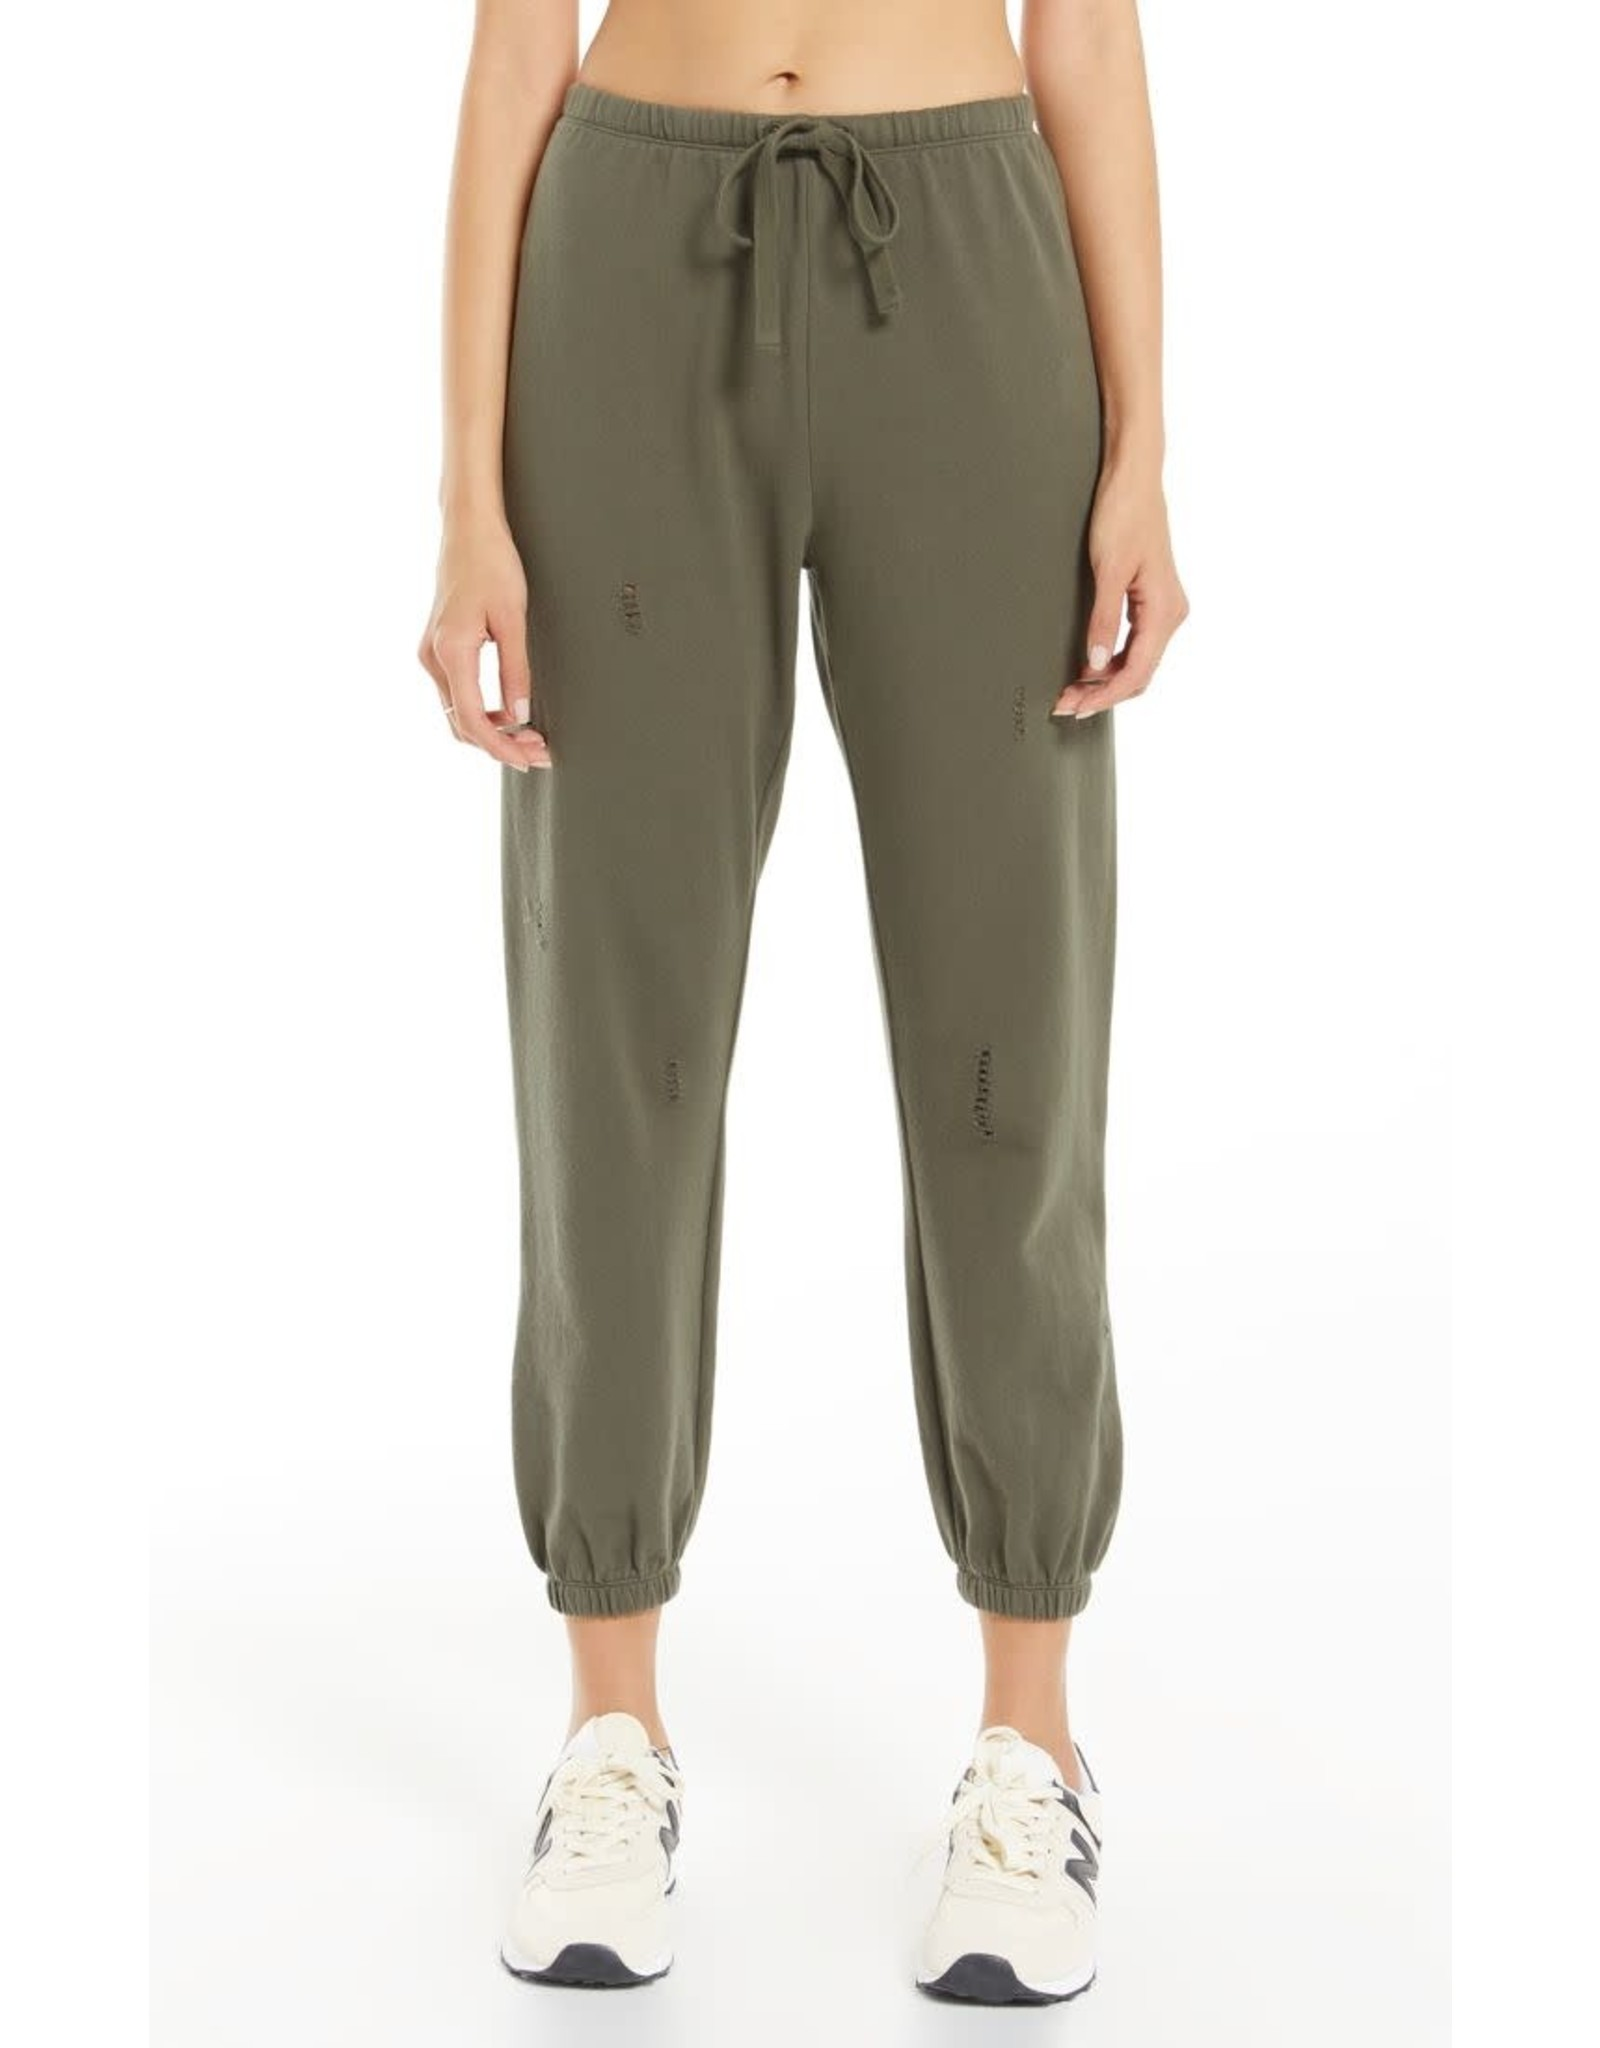 Z supply ZS Aria Distressed Jogger